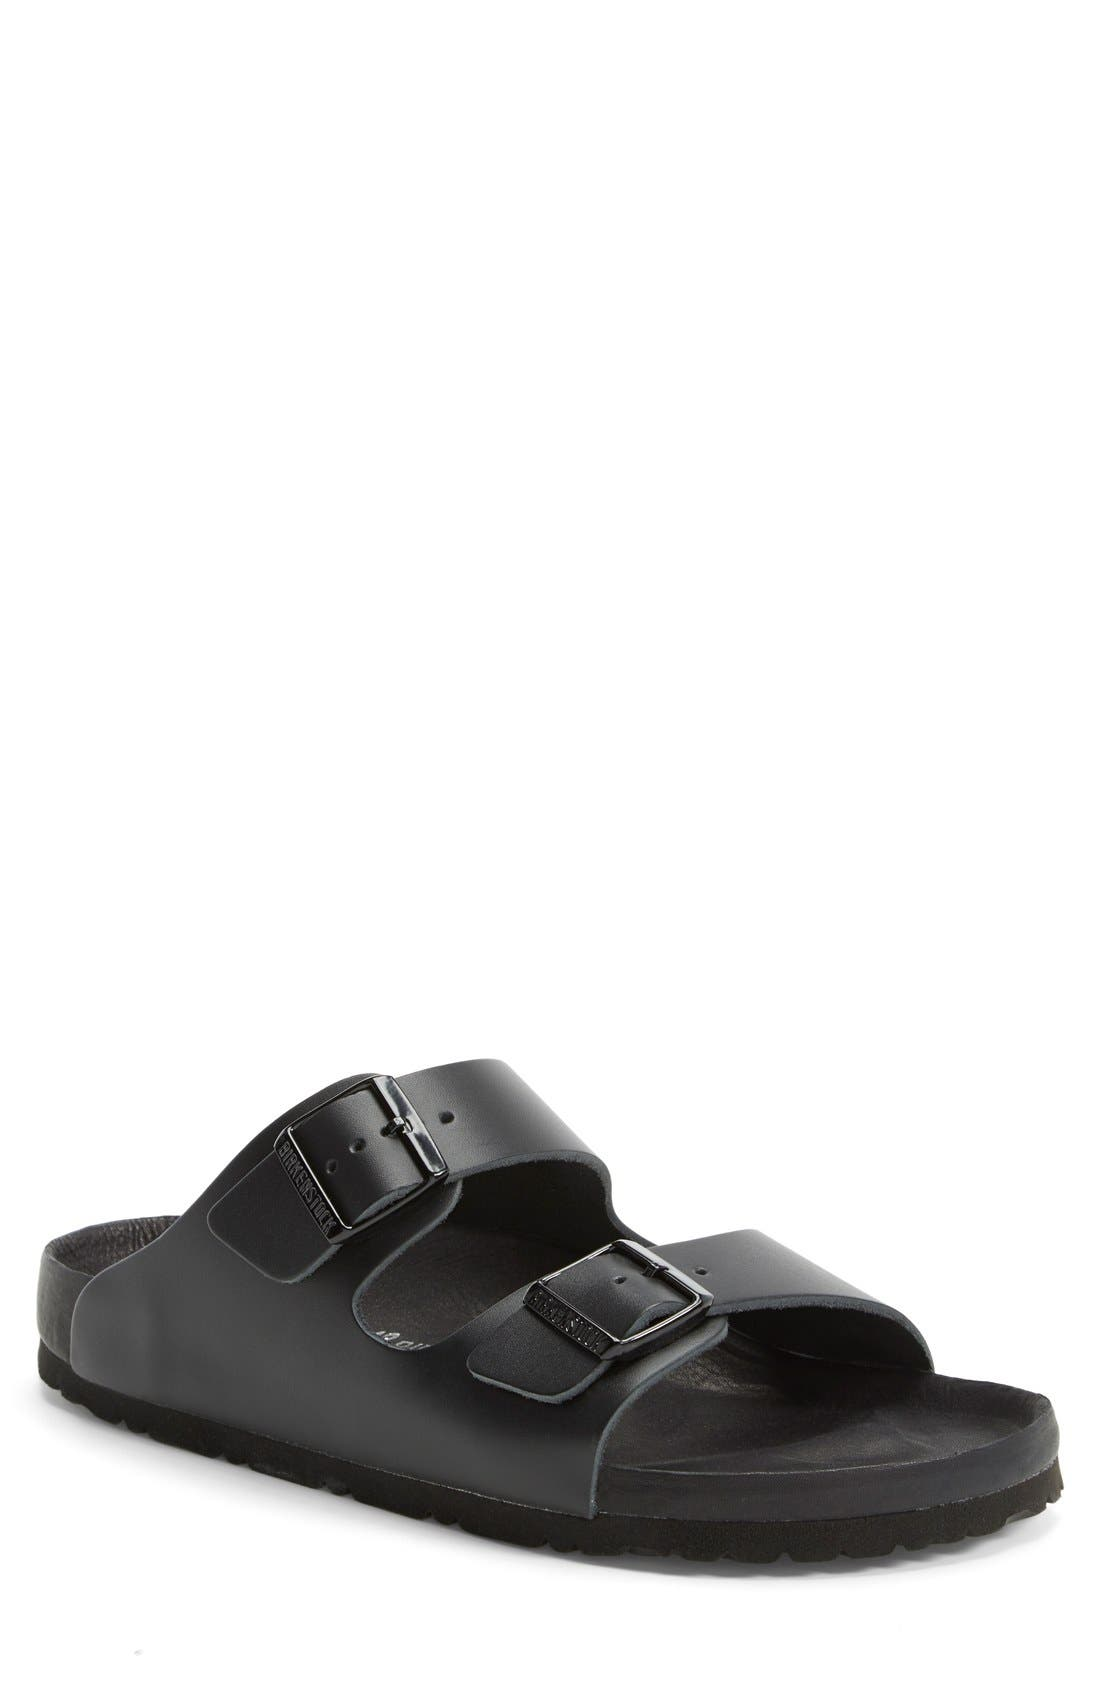 Birkenstock Monterey Leather Slide Sandal (Men)